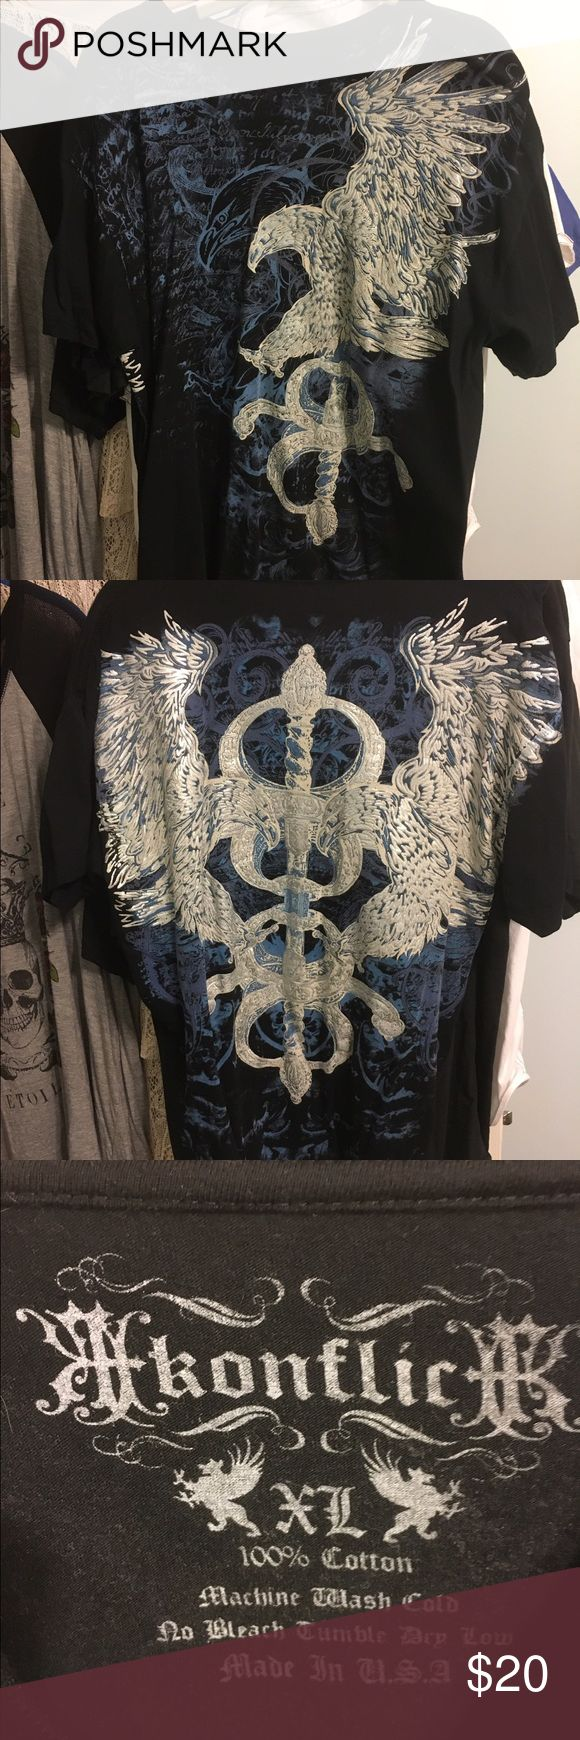 Konflic graphic tee print on front and back Gently worn graphic tee size xl black with silver Eagle on front and wings on back konflic Shirts Tees - Short Sleeve